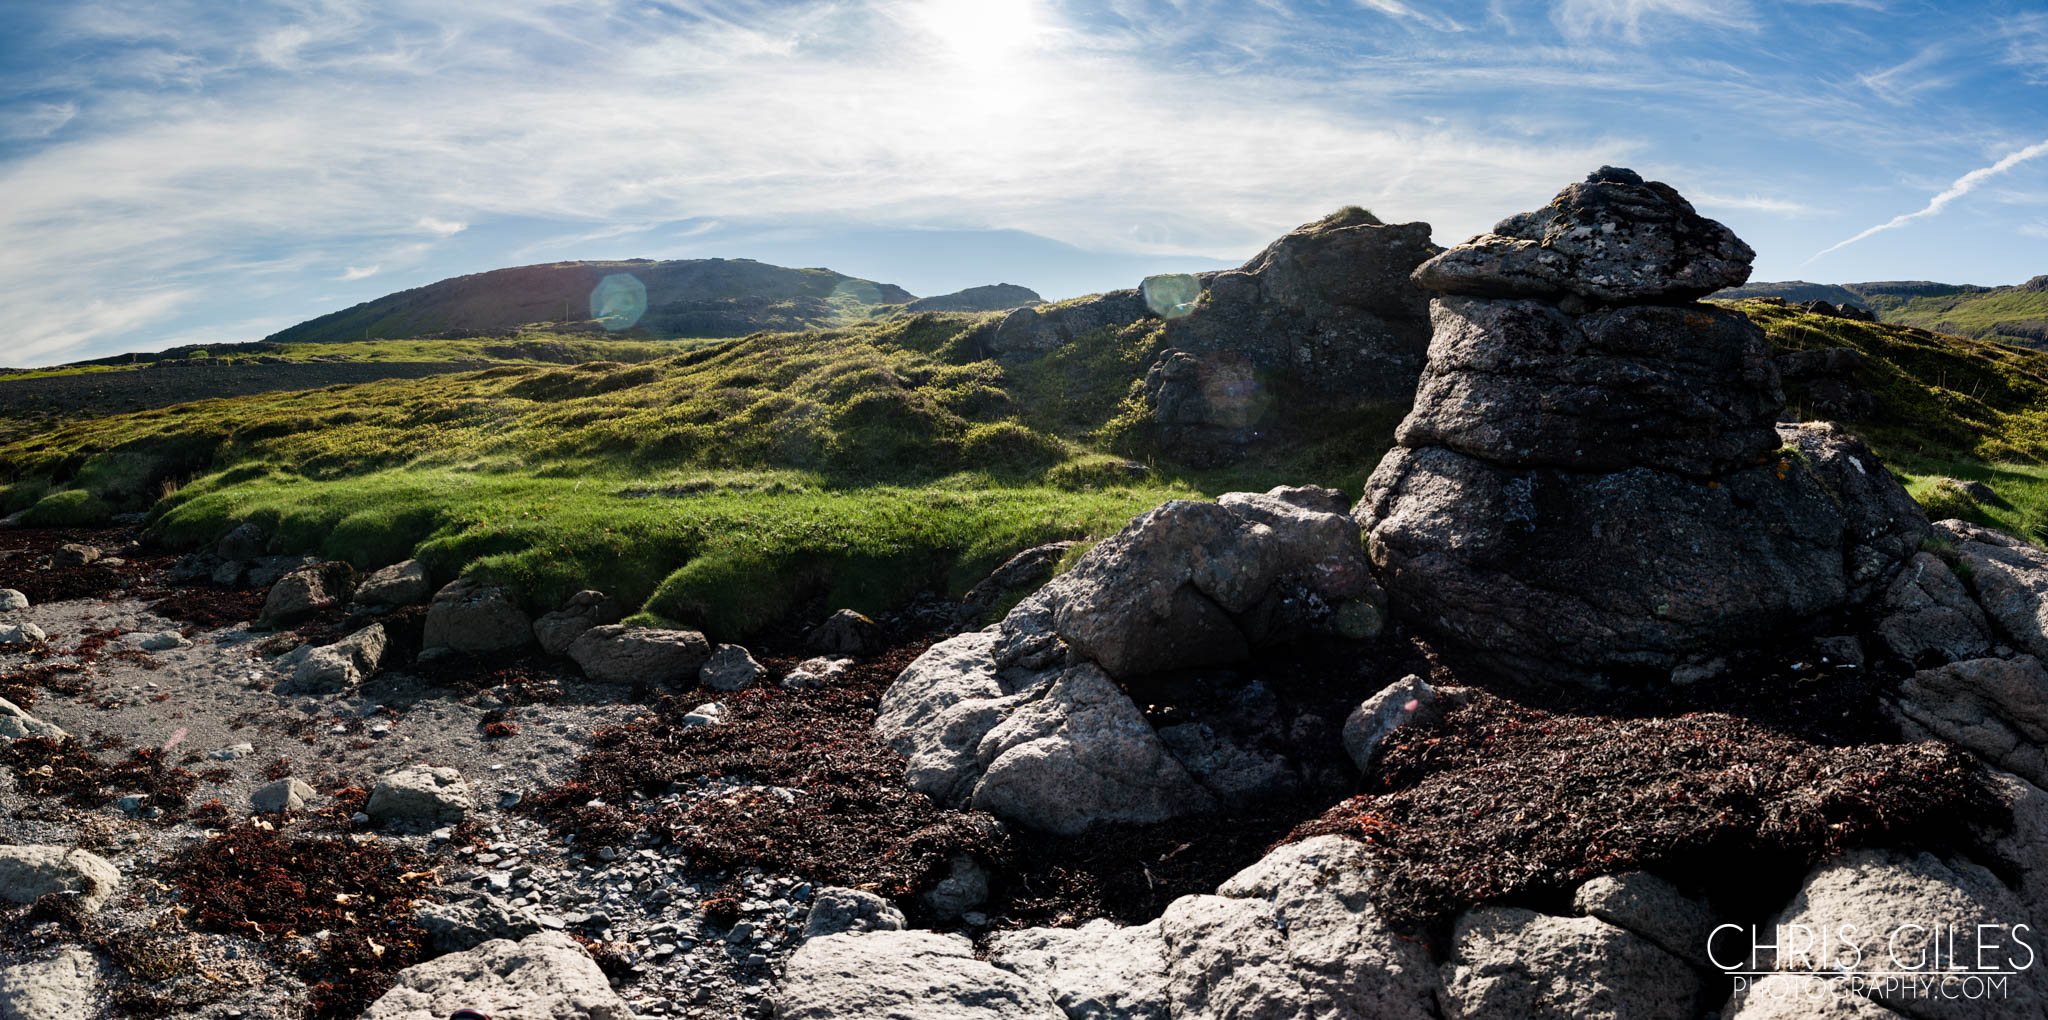 Interesting rock formations of Iceland